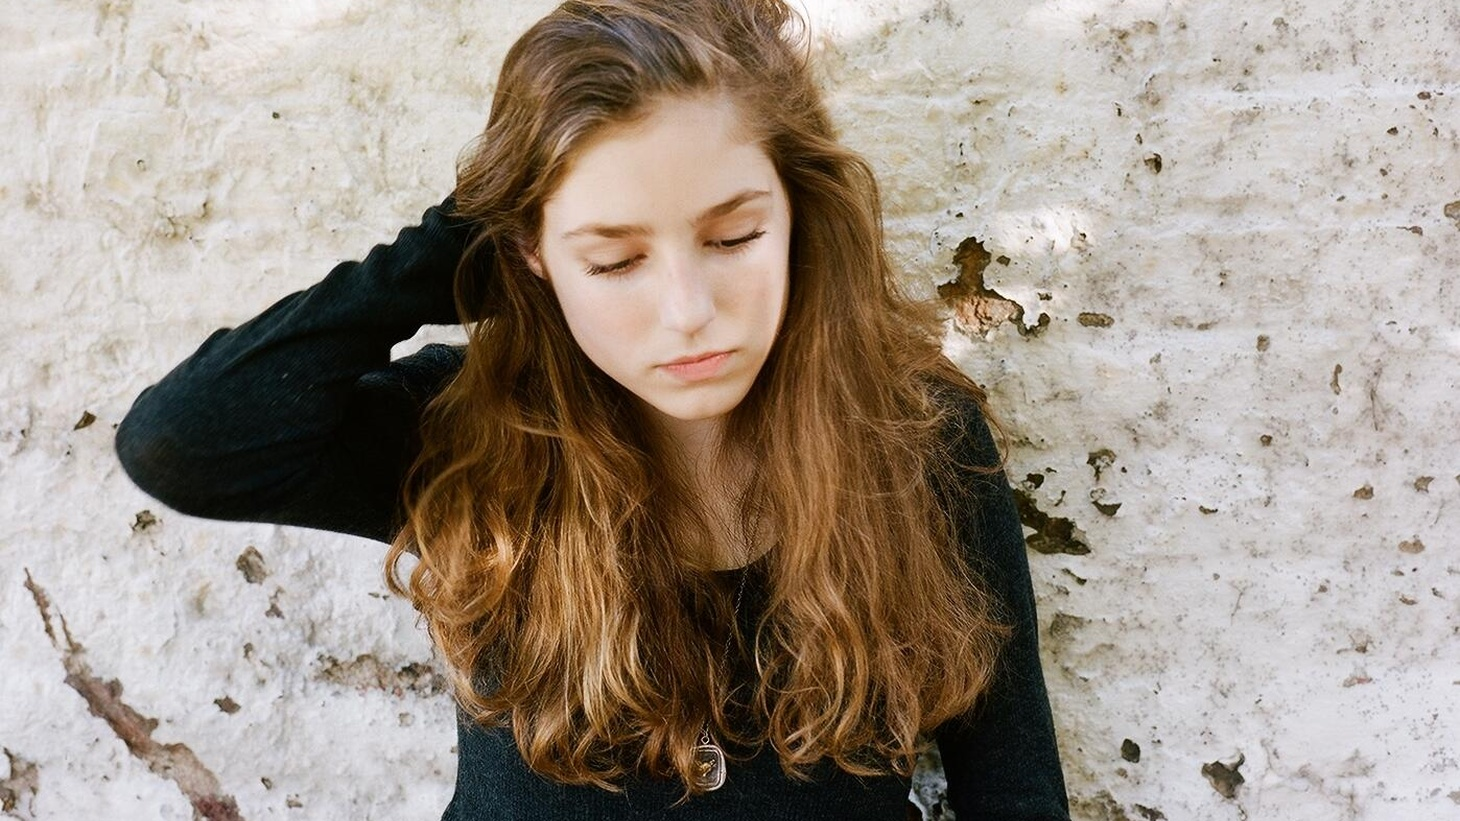 By the time she was 12, Birdy had already won a major open mic competition in the UK. Now, at the ripe age of 15, she's releasing a full-length debut interpreting...